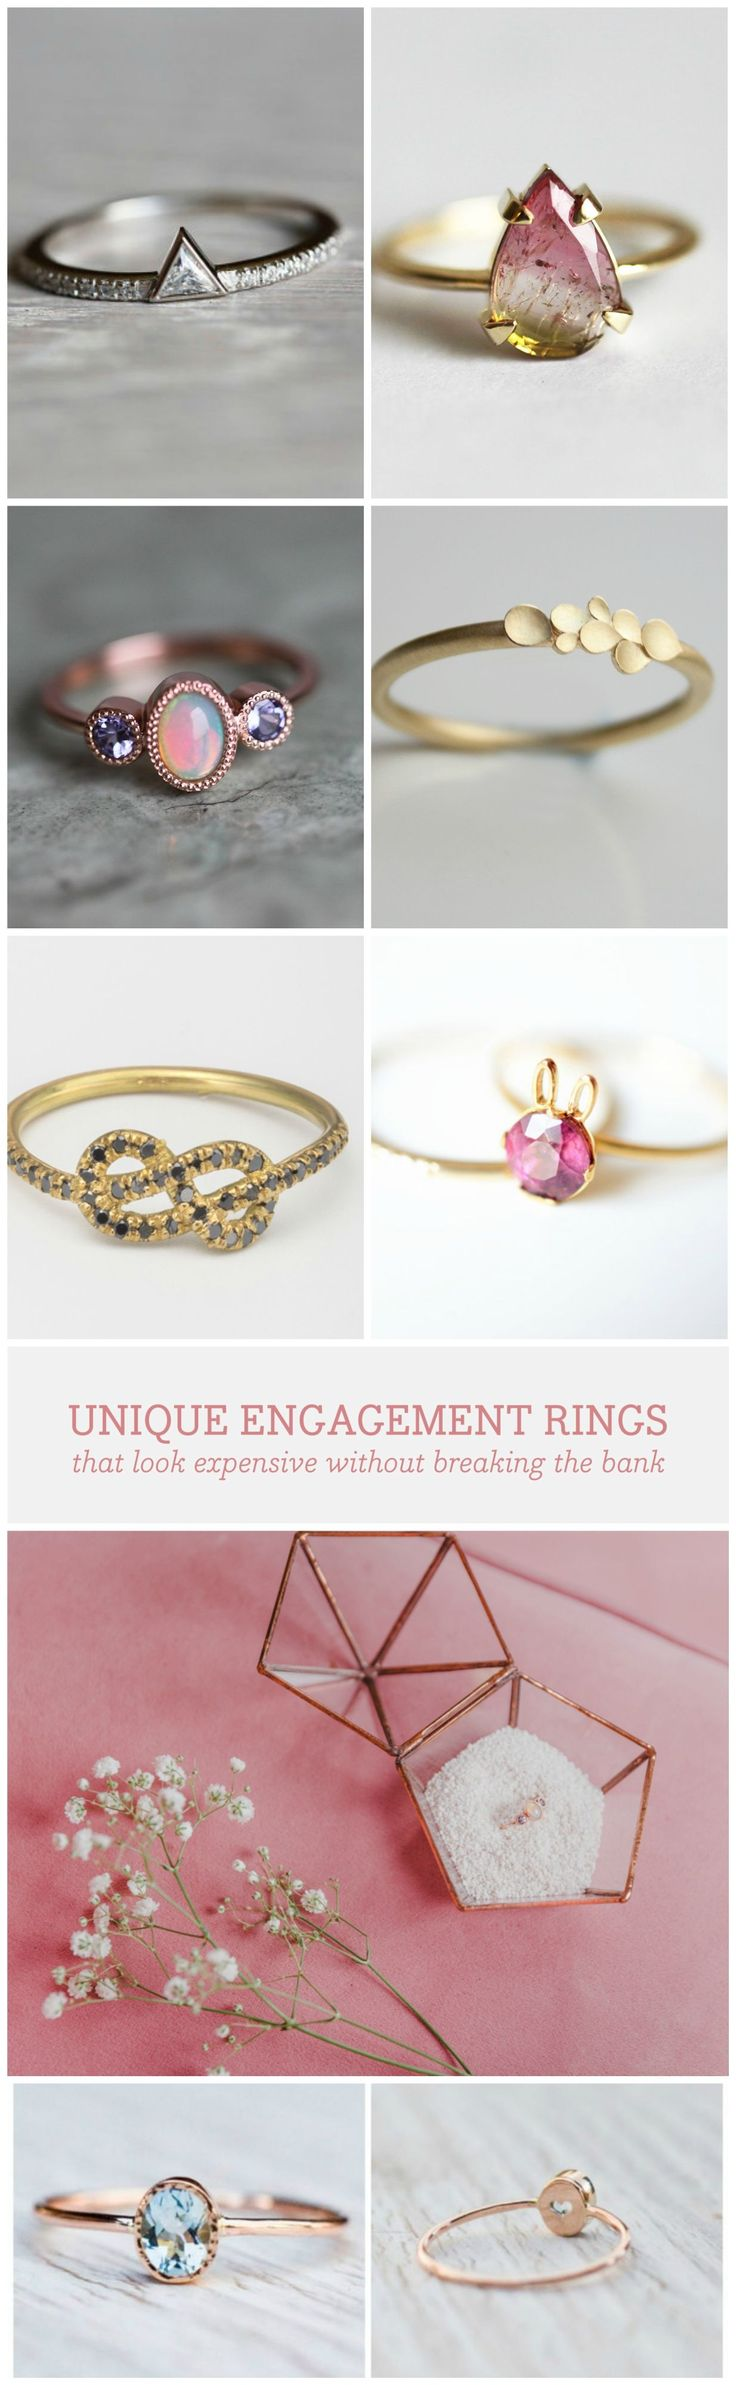 Nontraditional engagement rings are stealing the romantic scene – and the best part of it all? They're all under 1000 Euro. So don't waste time and check out these amazing options! via en.dawanda.com